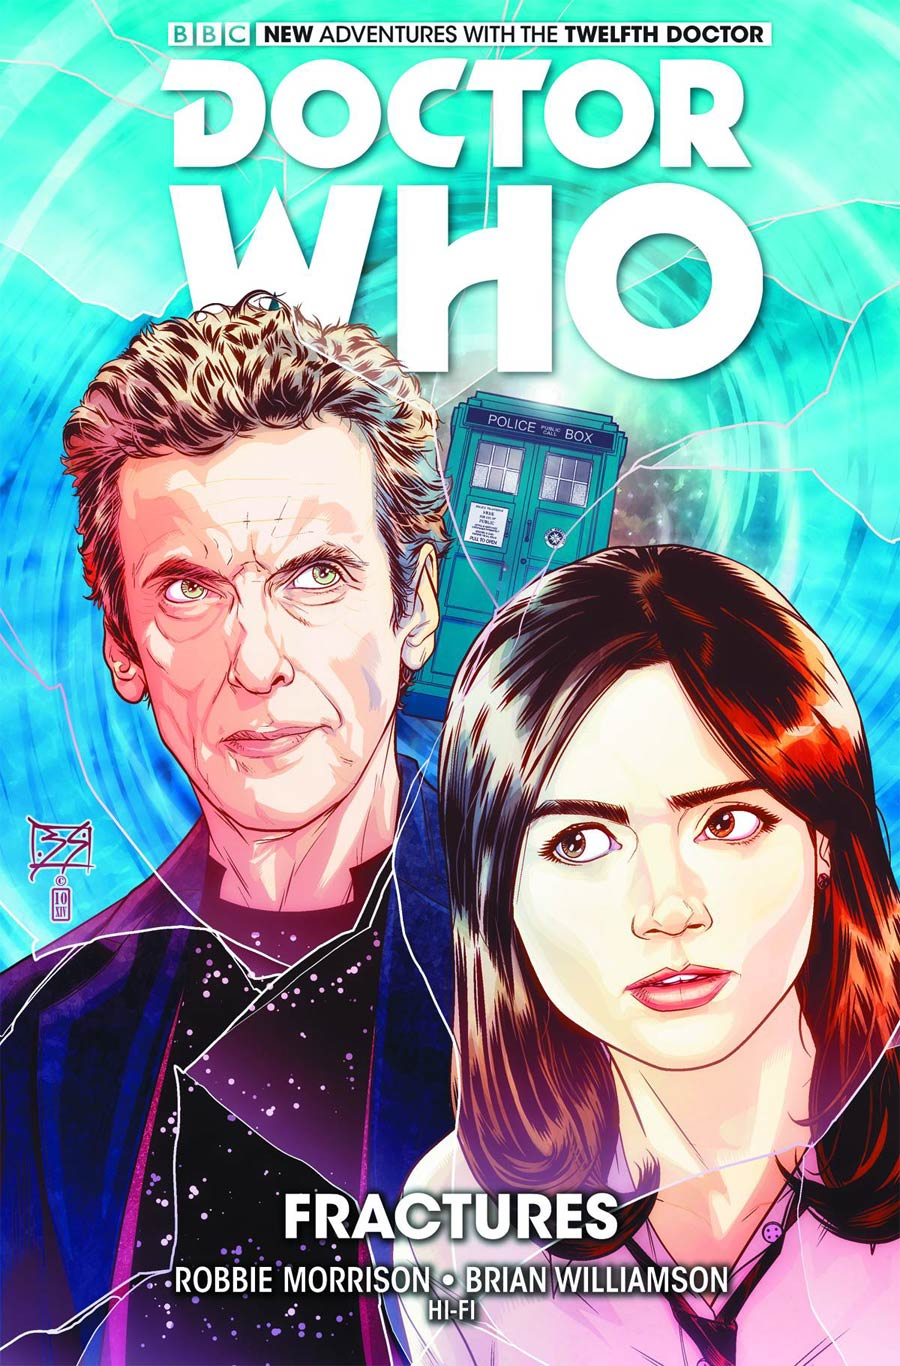 Doctor Who 12th Doctor Vol 2 Fractures HC